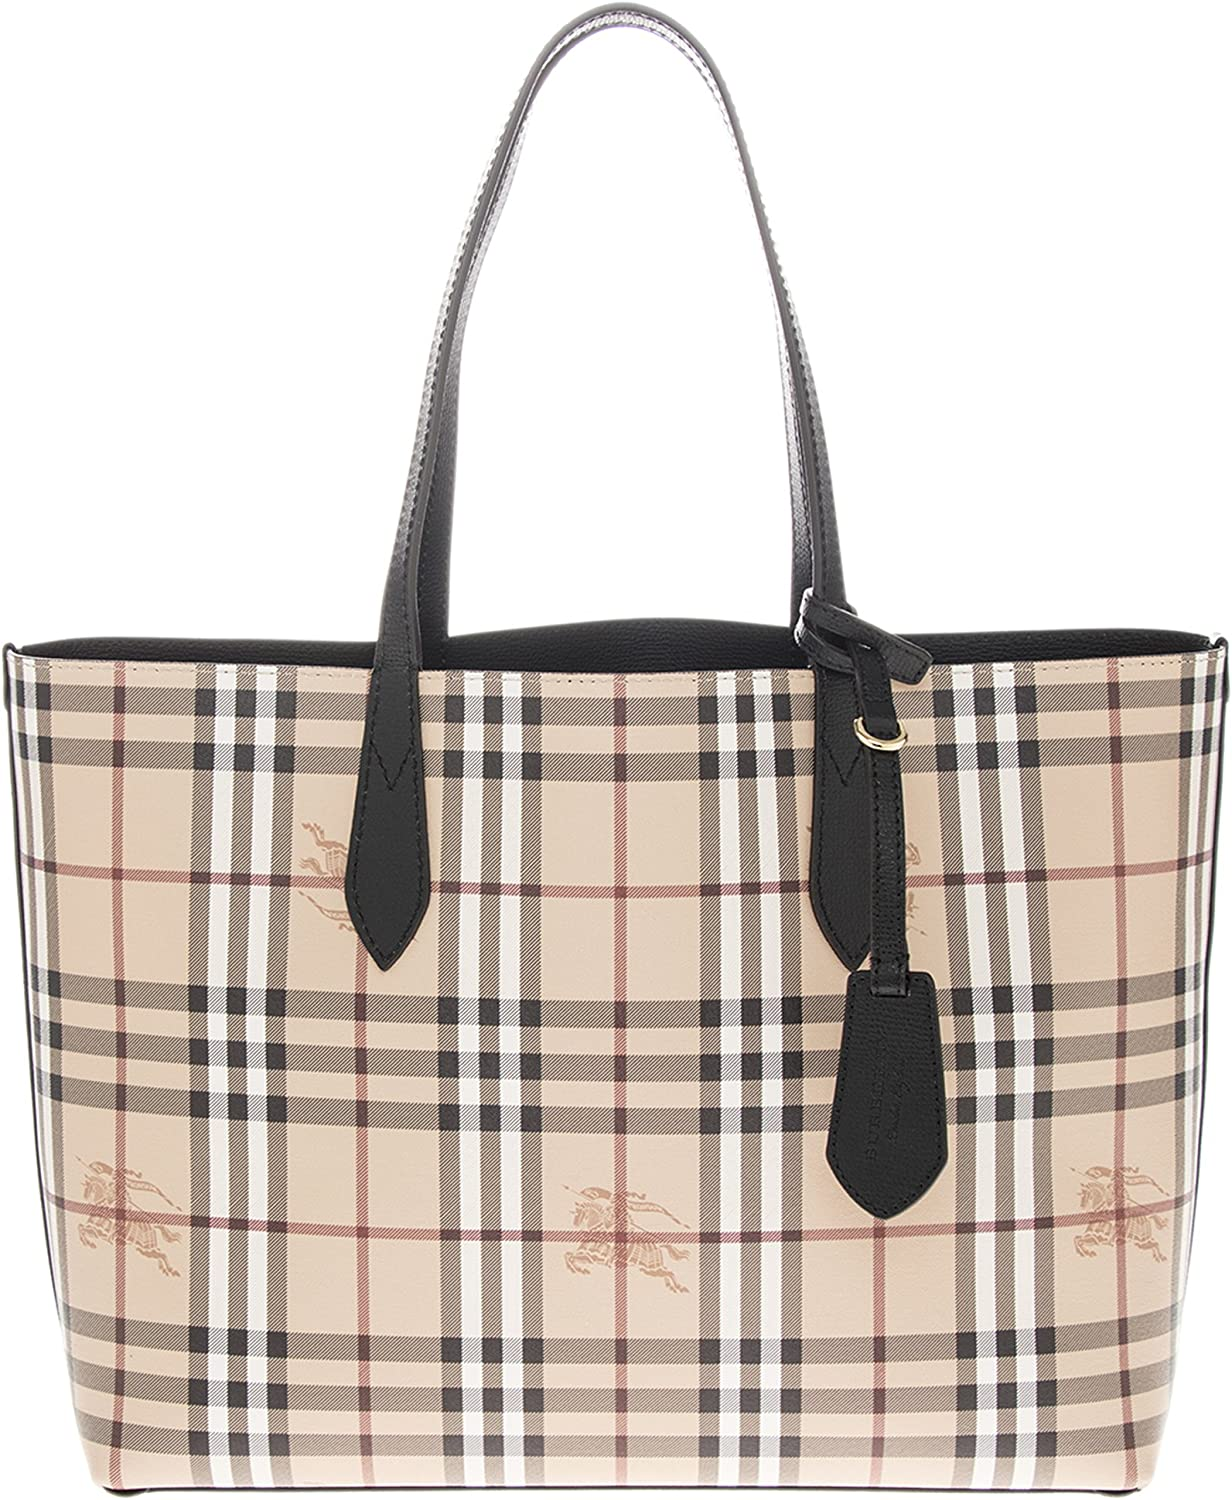 Burberry Bolso Tote Reversible MD Lavenby